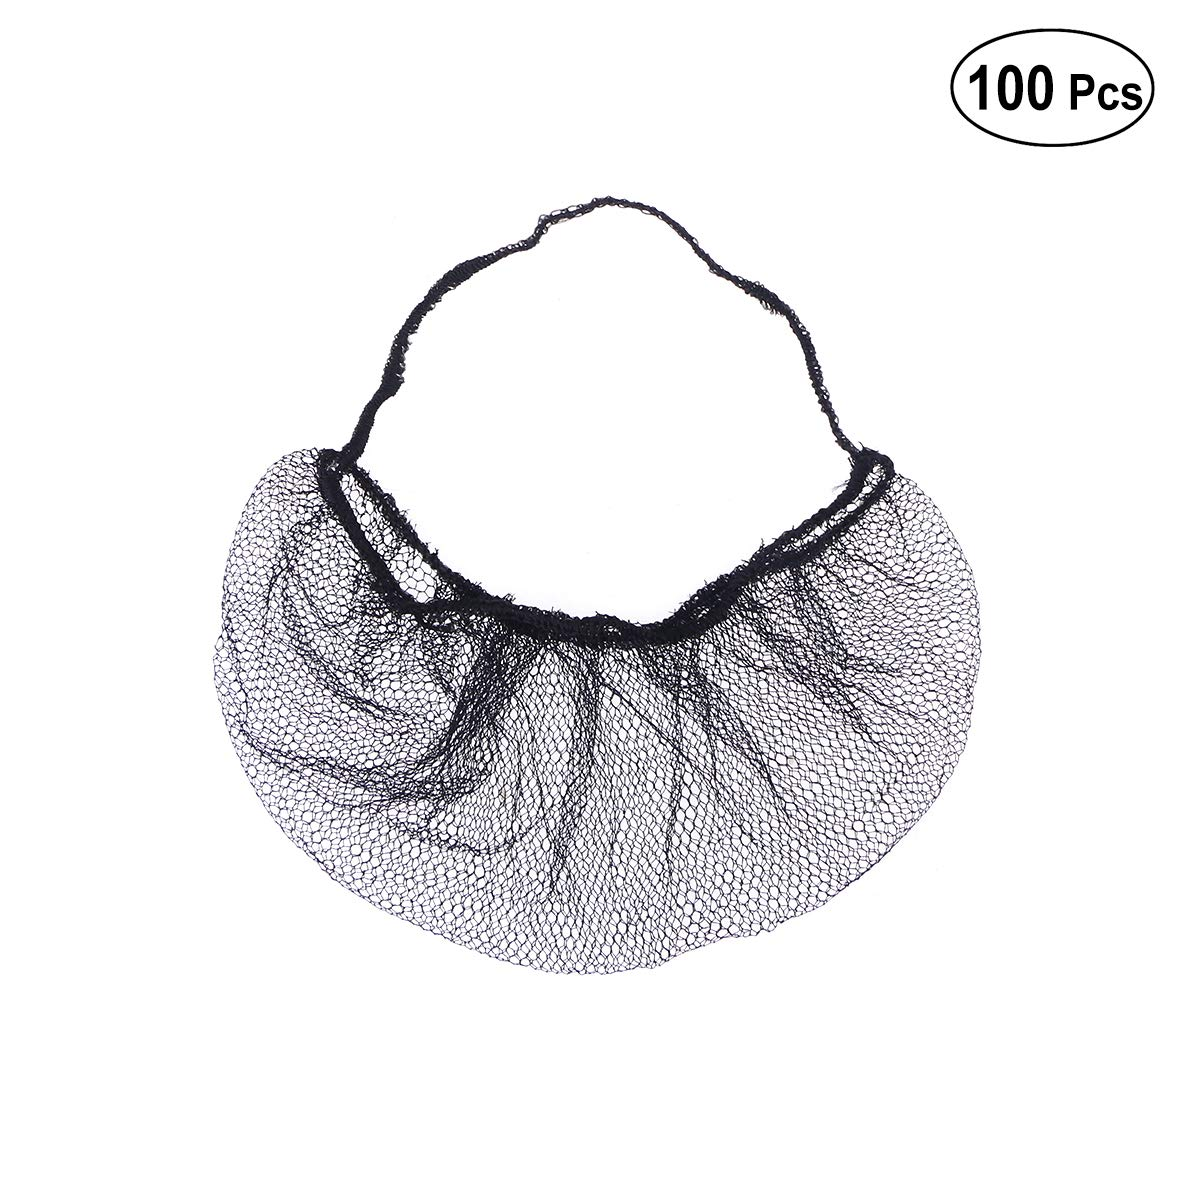 Healifty Disposable Beard Cover Beard Net Protector 100pcs(Black)